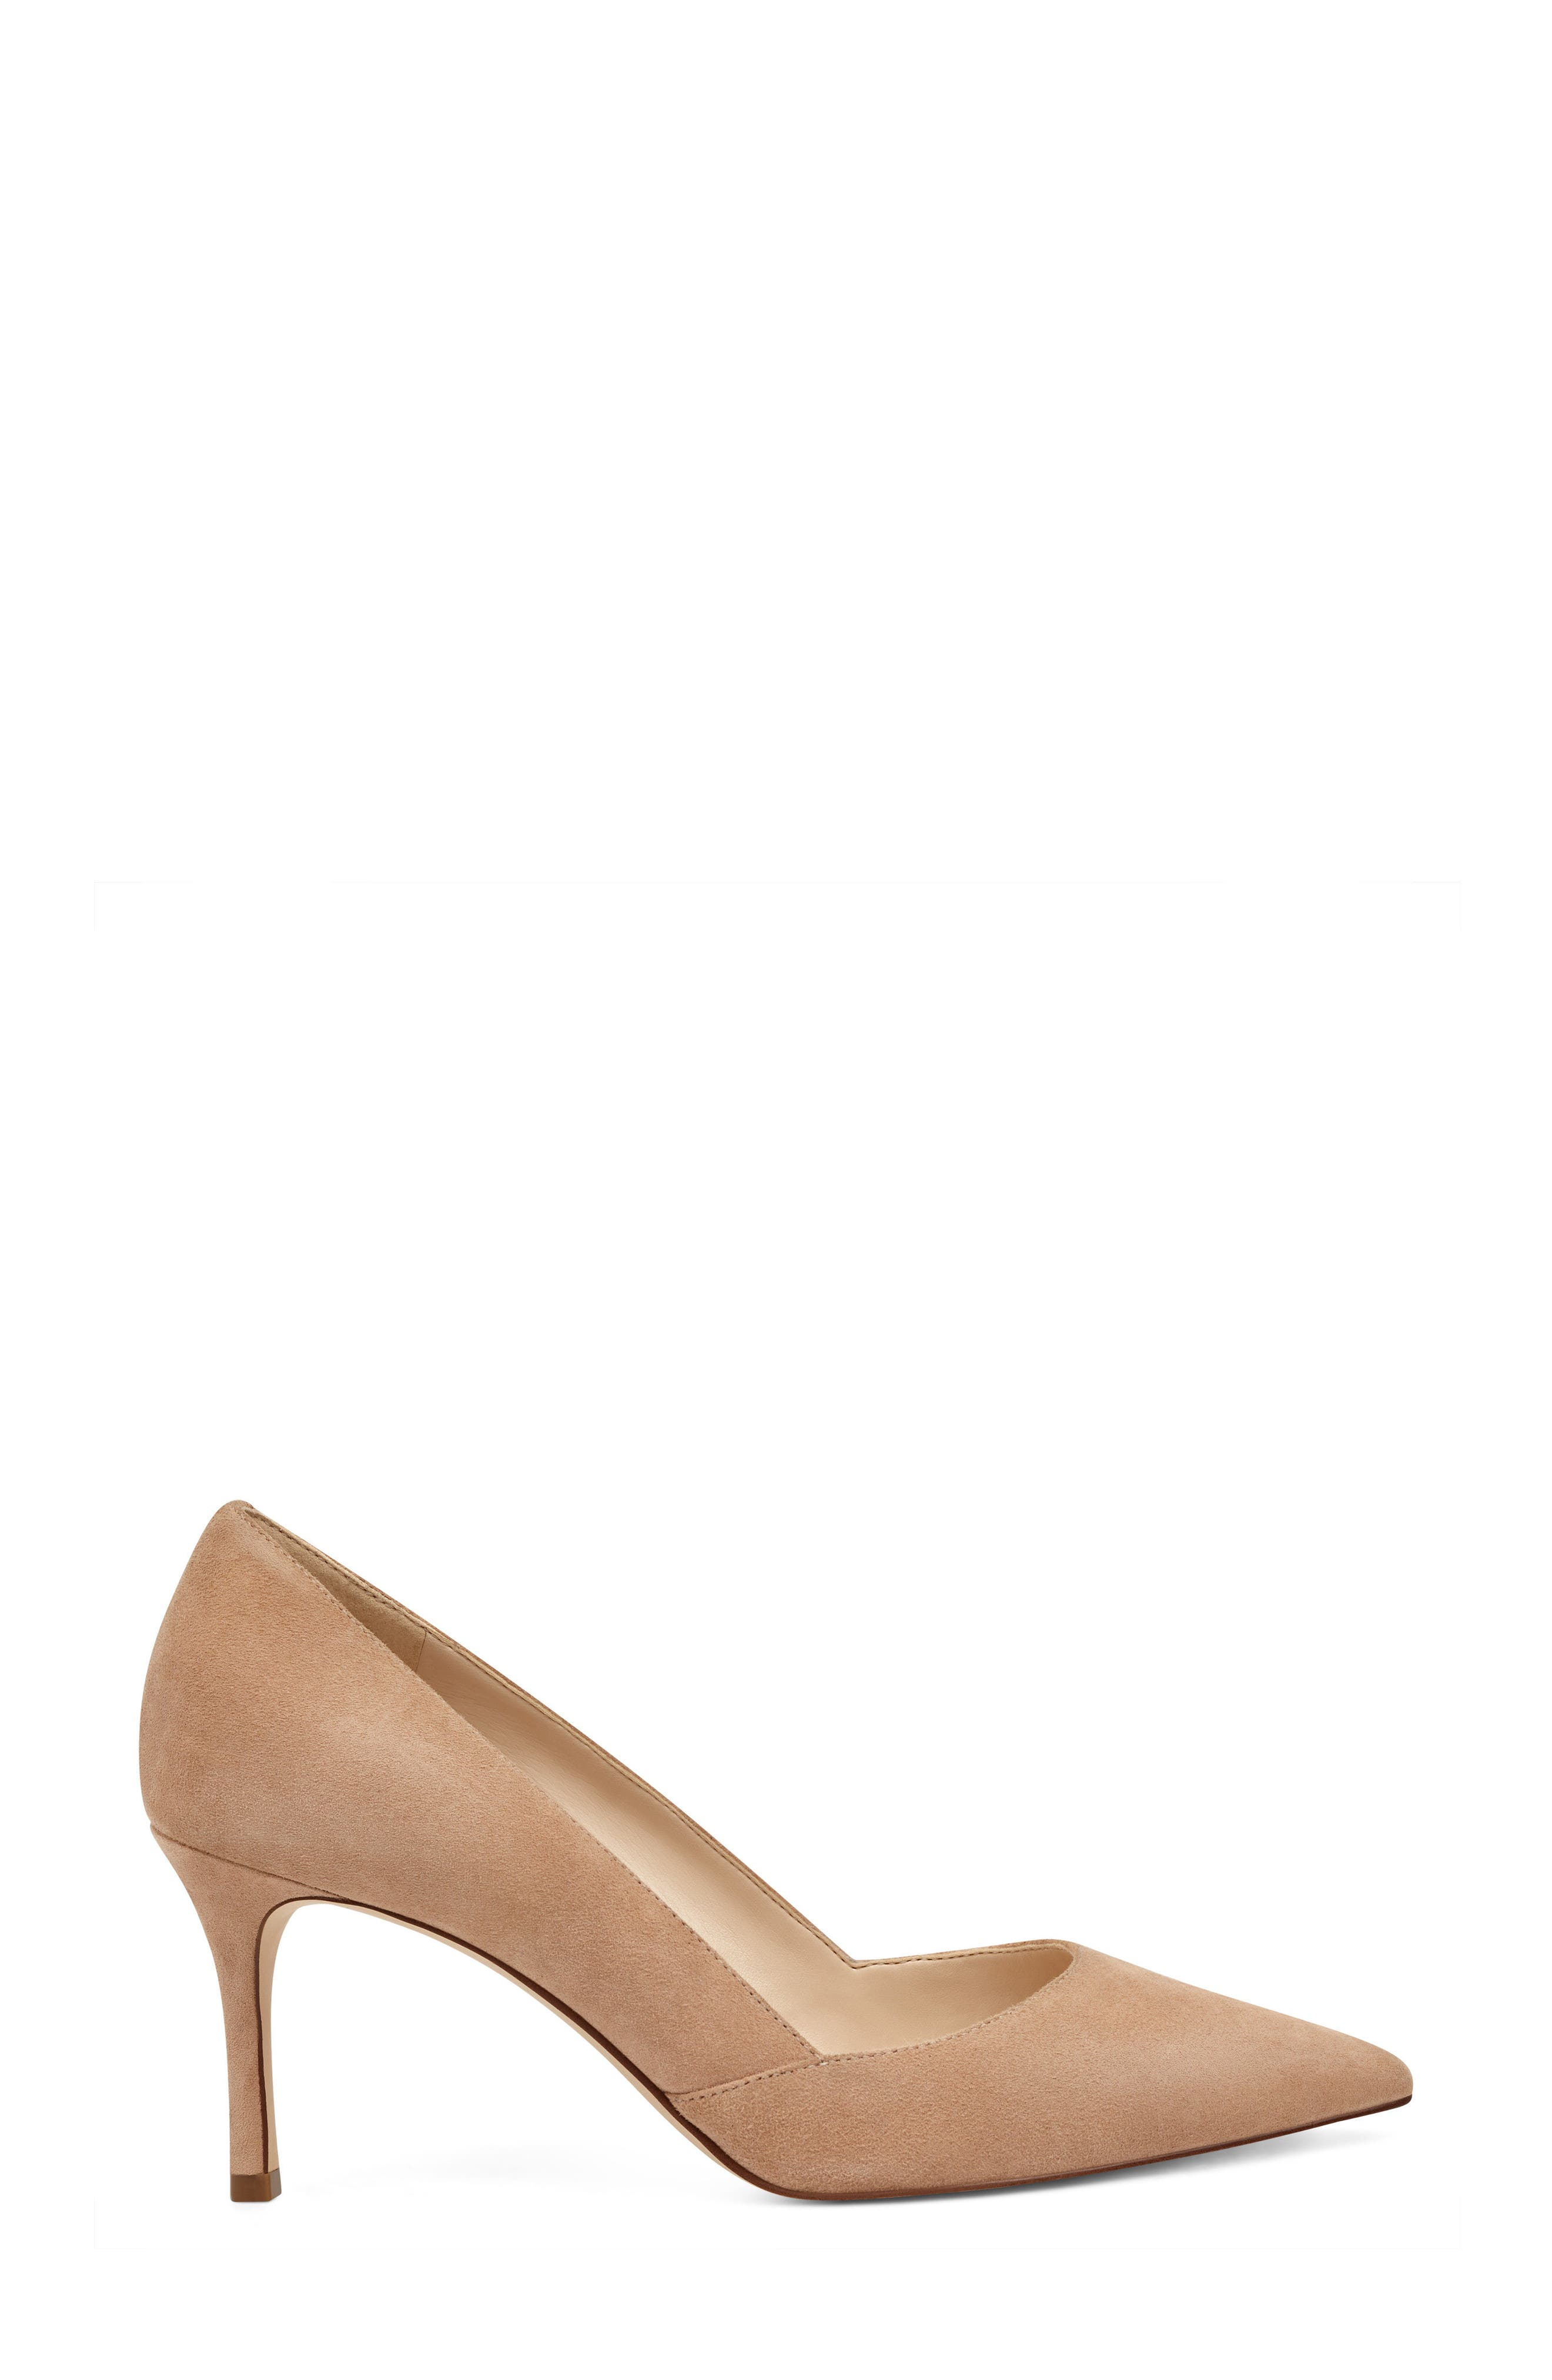 Mine Pointy Toe Pump,                             Alternate thumbnail 3, color,                             Light Natural Suede